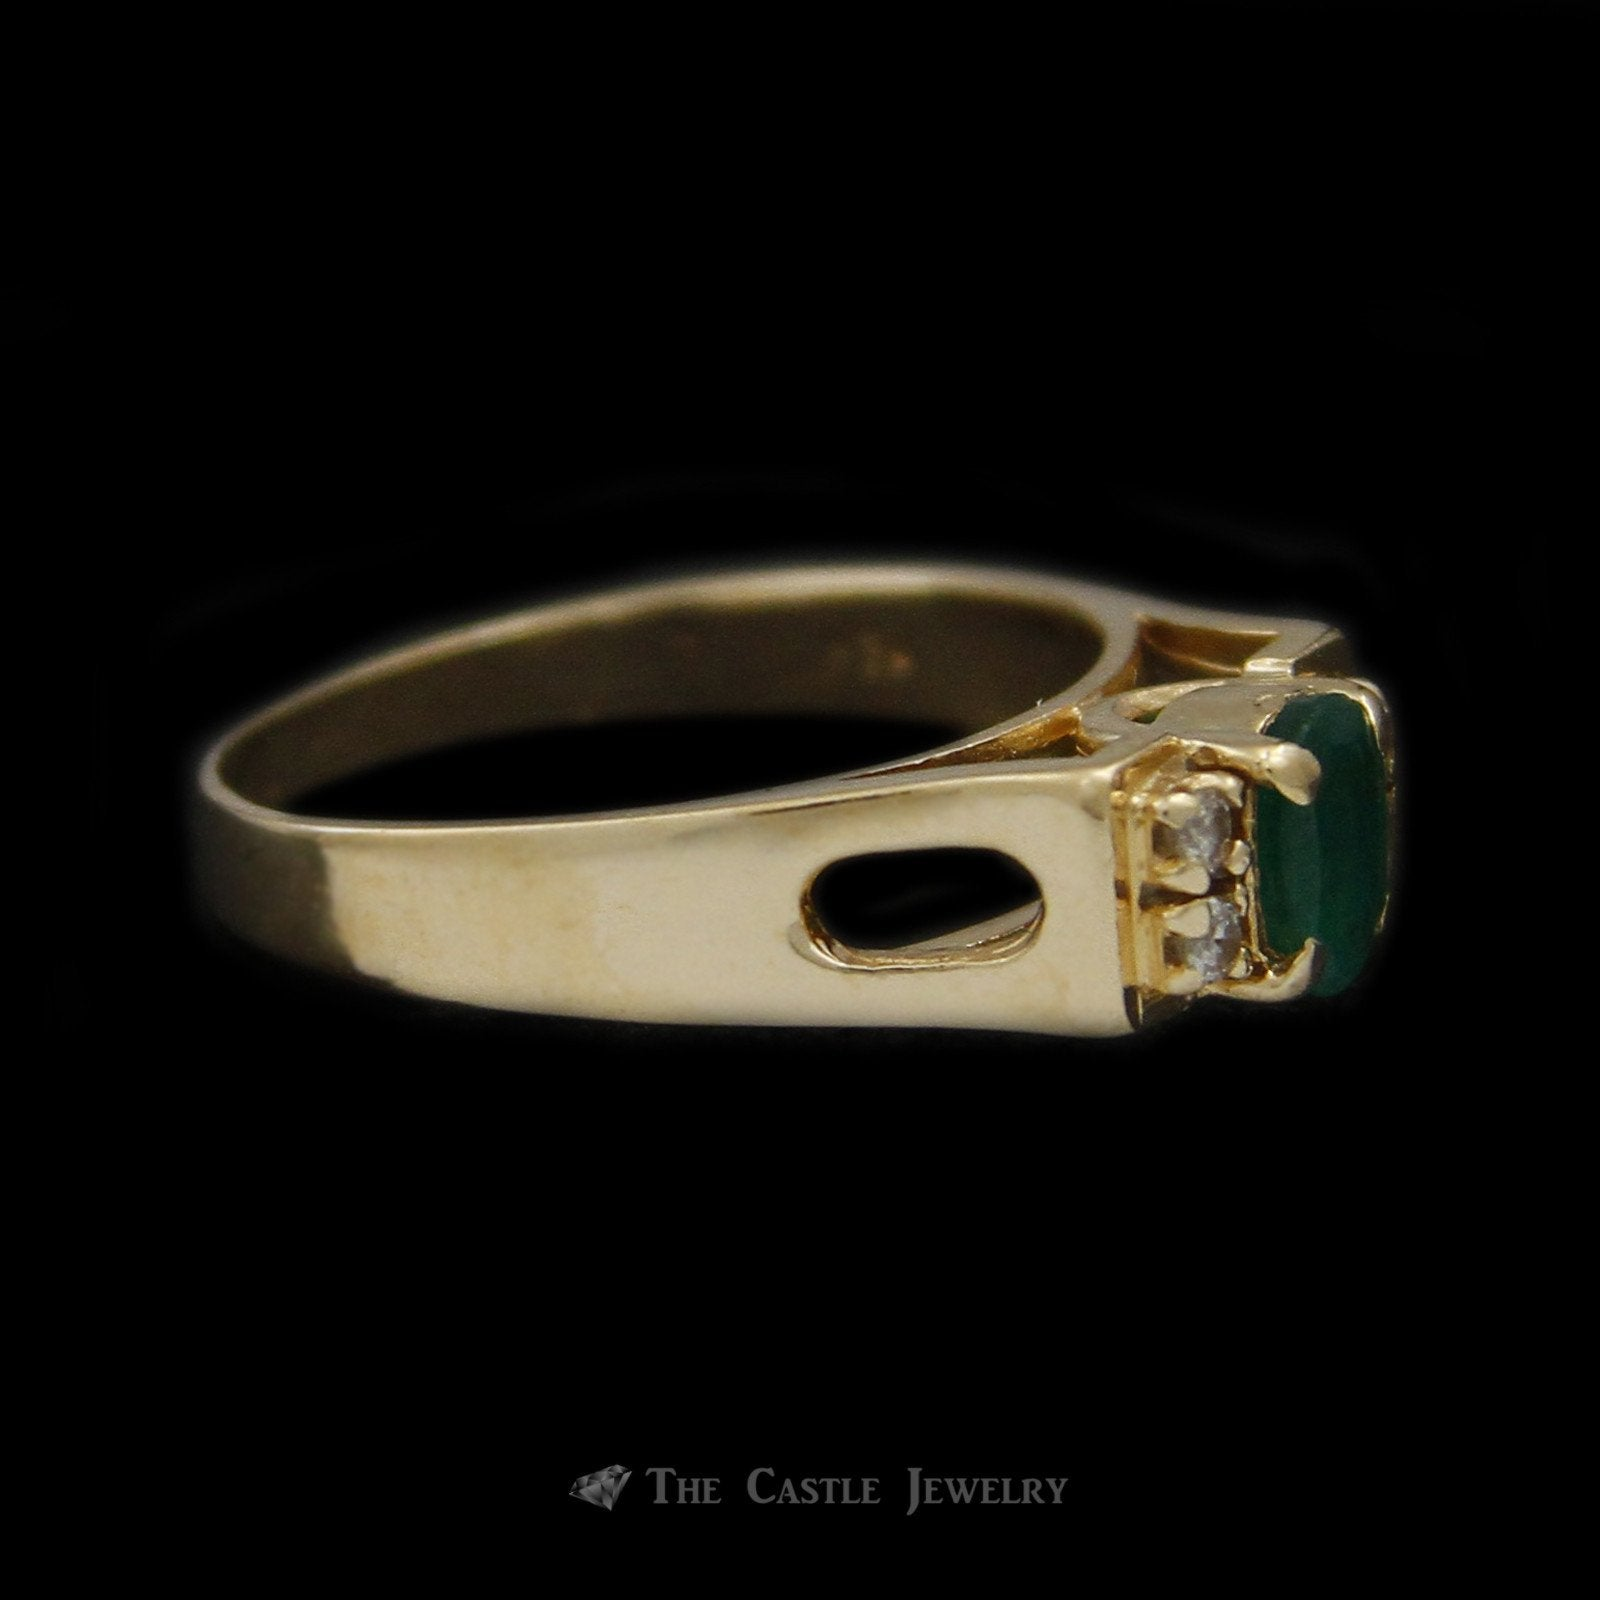 Oval Emerald Ring in Rectangular Mounting & Diamond Accents in 14K Yellow Gold-2